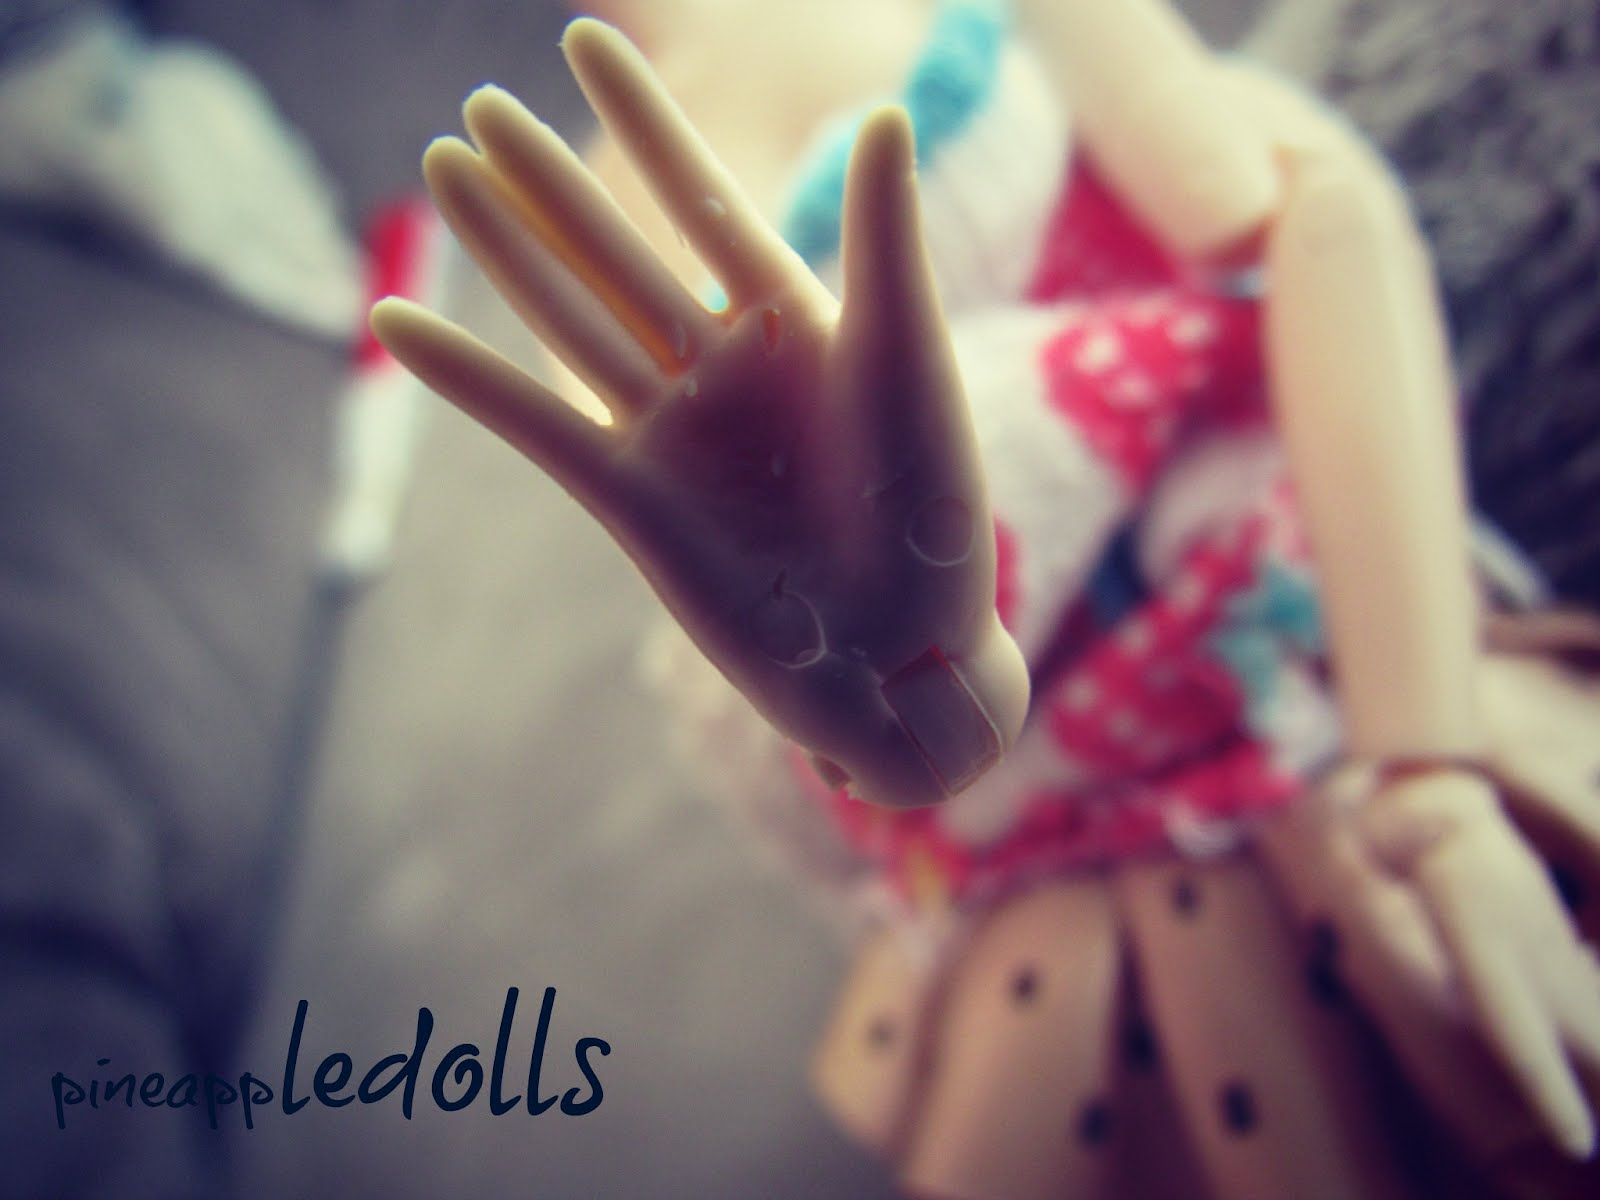 ♠ PINEAPPLE DOLLS  ♠